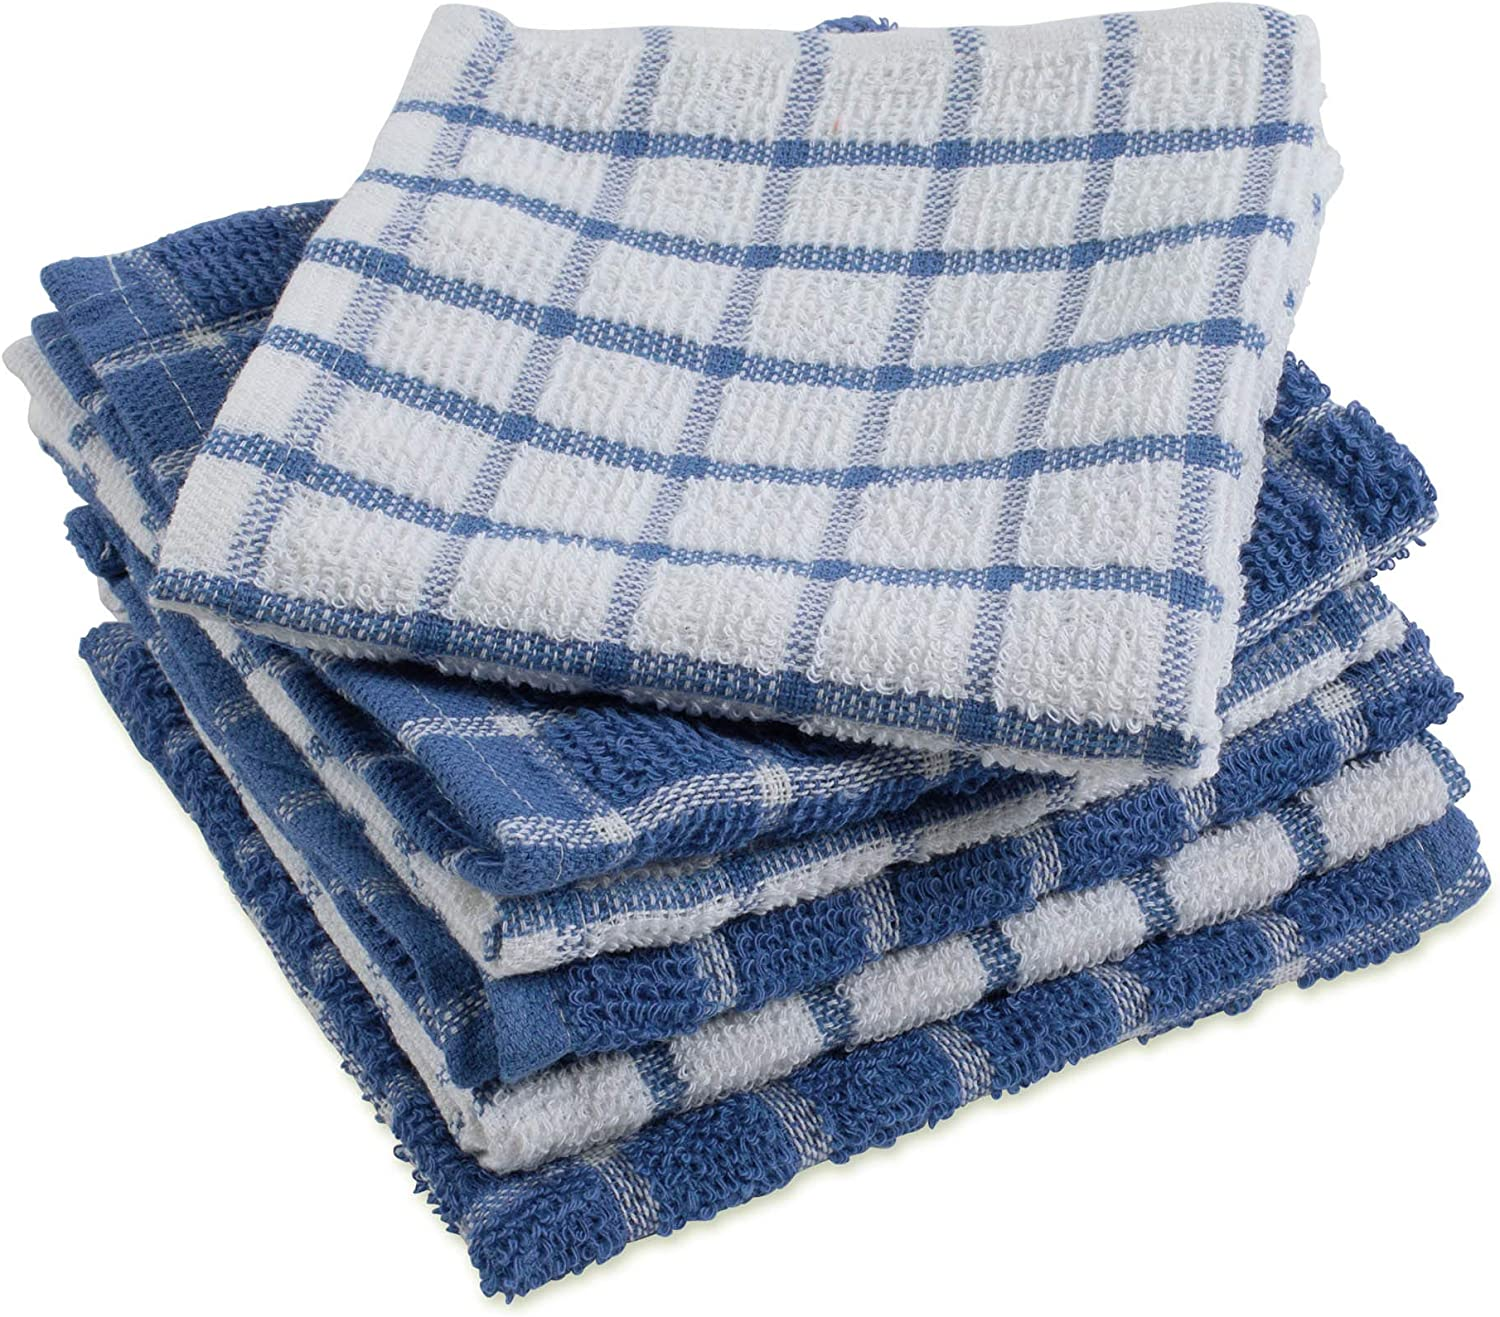 DII Terry Combo Windowpane Dishcloths Absorbant, Multi-Use, Fast Drying and Machine Washable, 12x12, Blue